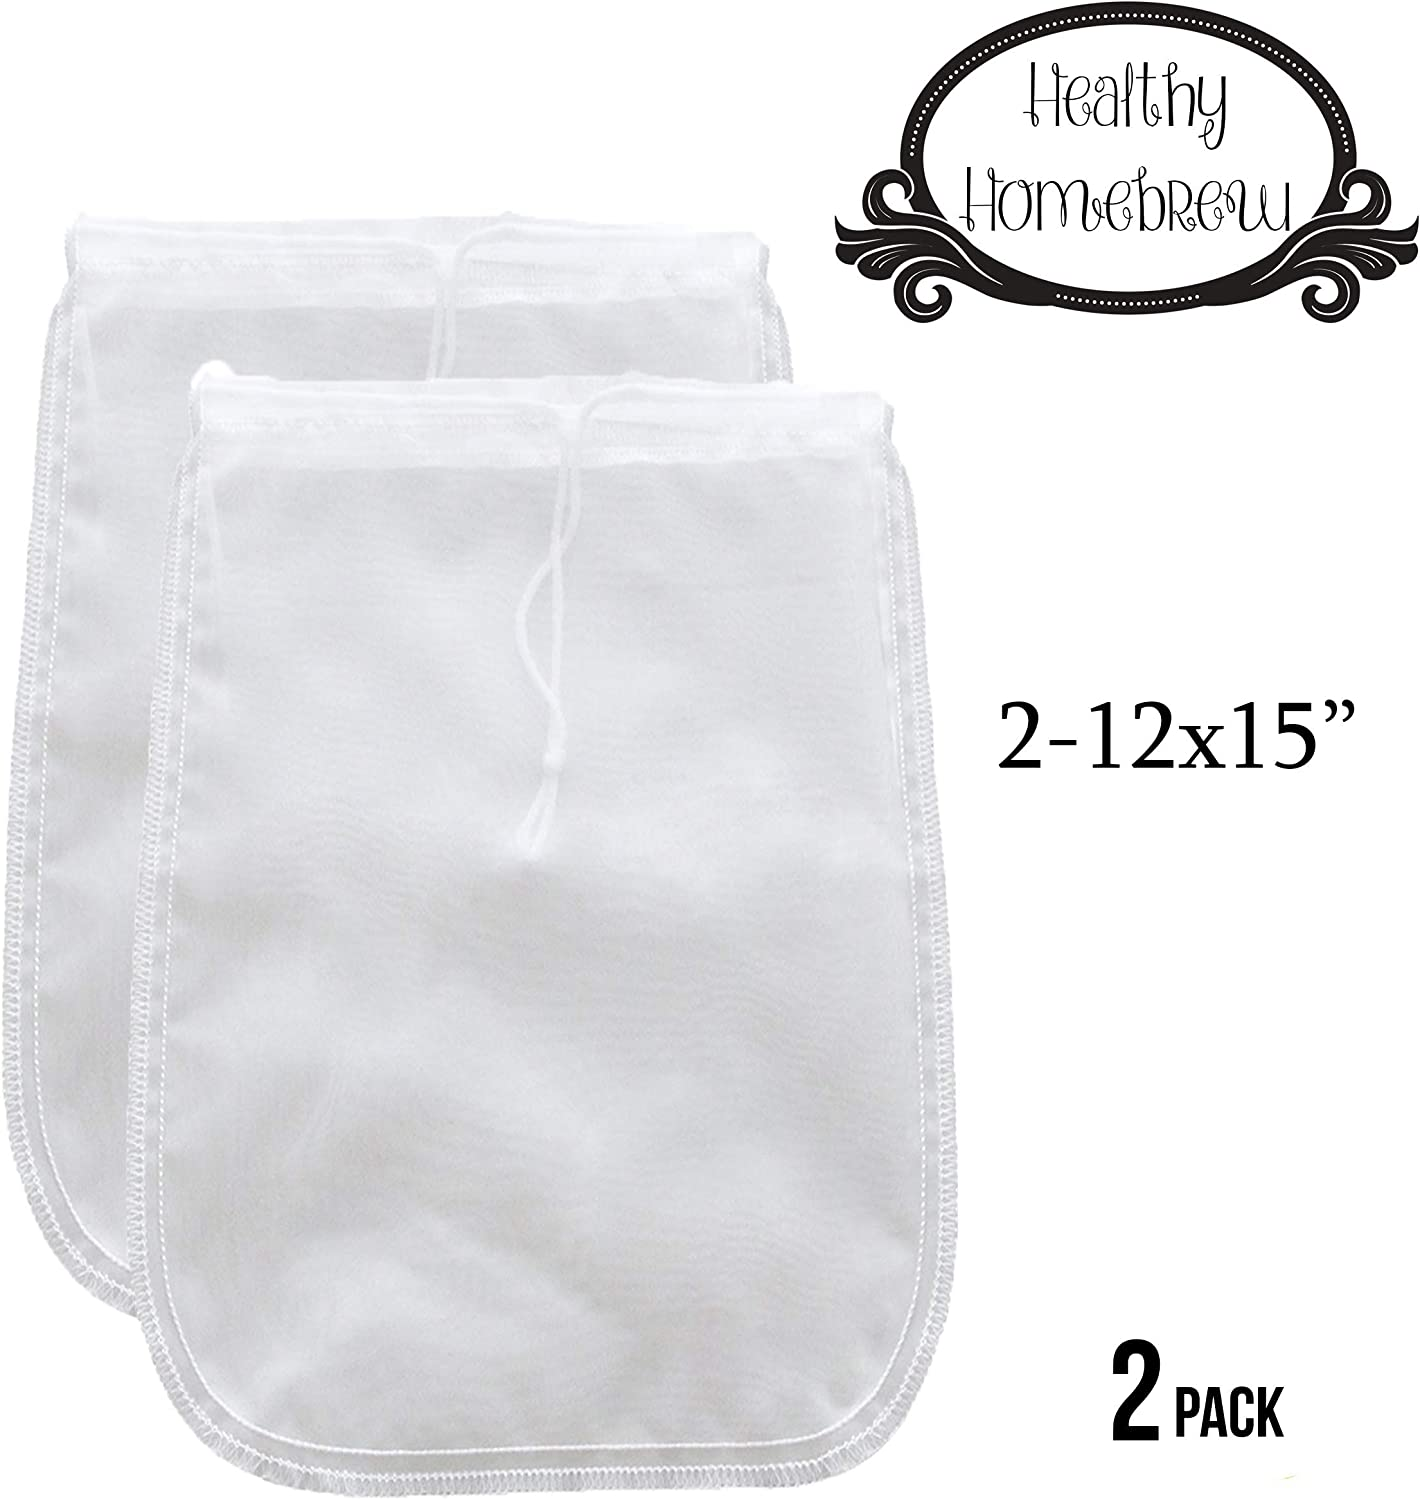 "Mesh Strainer Bags for Almond, Cashew Nut Milks, Cold Brew Coffee, Homemade Greek Yogurt, Juicing, Home brewing – Reusable Extra Fine Nylon Extraction Sack (2 Pack - 12x15"")"